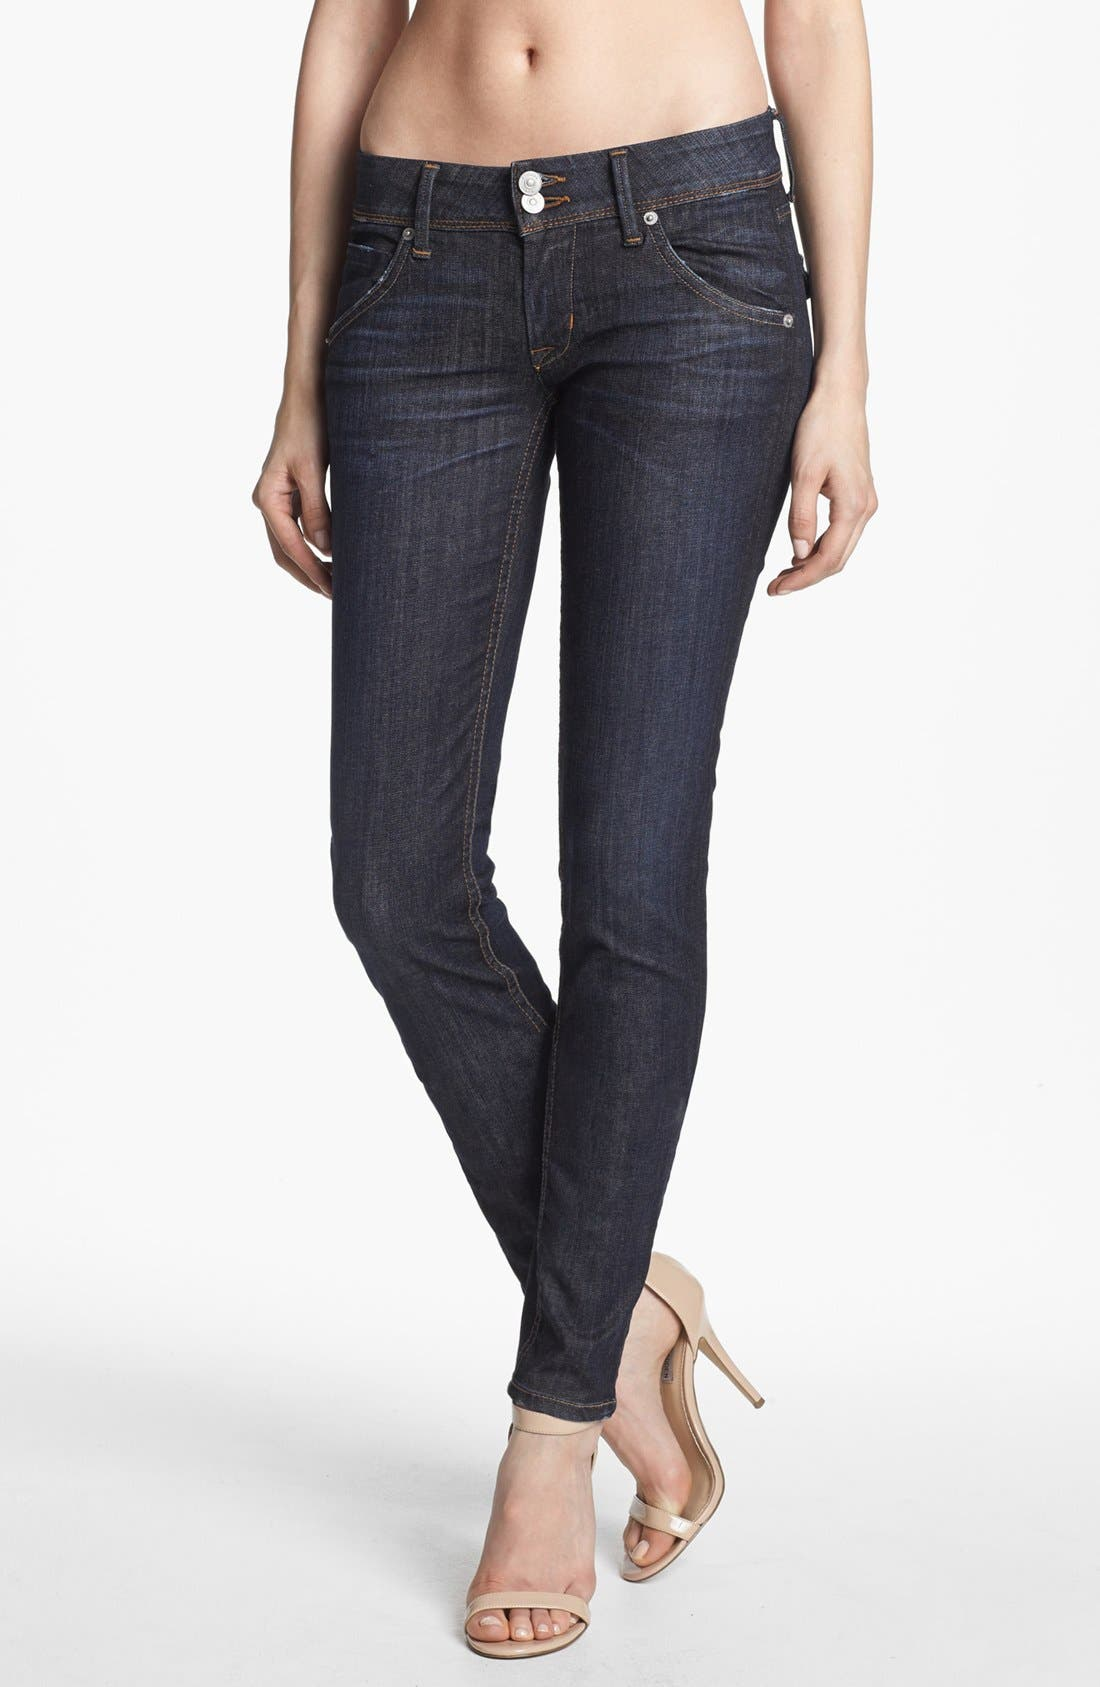 Alternate Image 1 Selected - Hudson Jeans 'Collin' Mid Rise Skinny Jeans (Abbey)